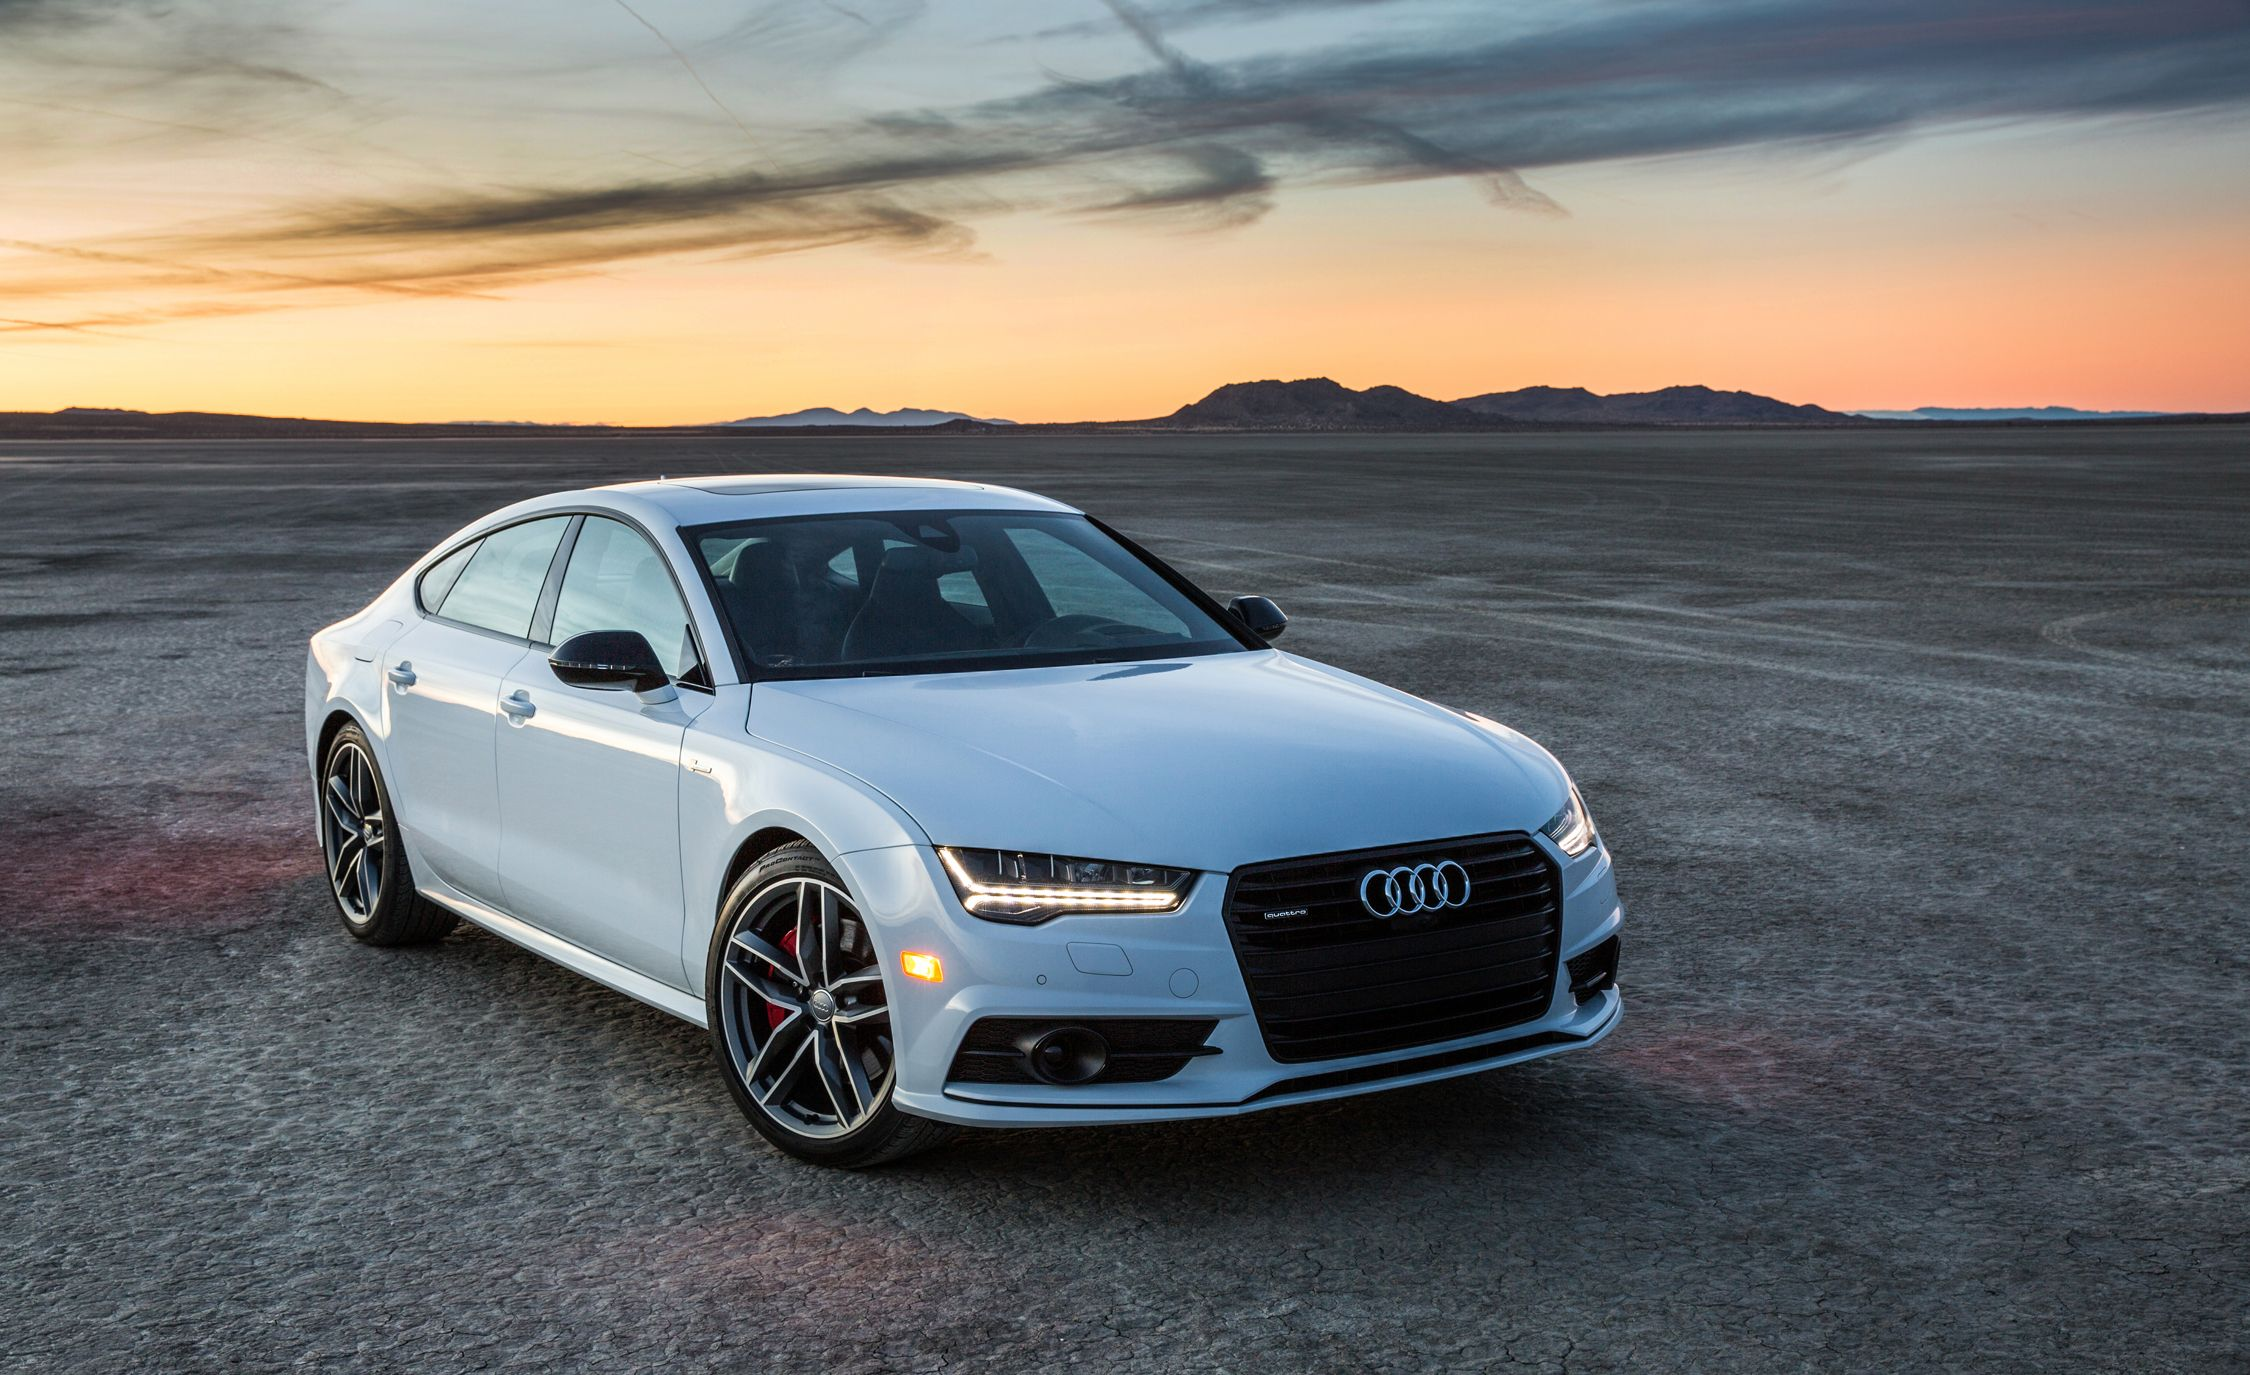 2018 audi a7 exterior review car and driver. Black Bedroom Furniture Sets. Home Design Ideas